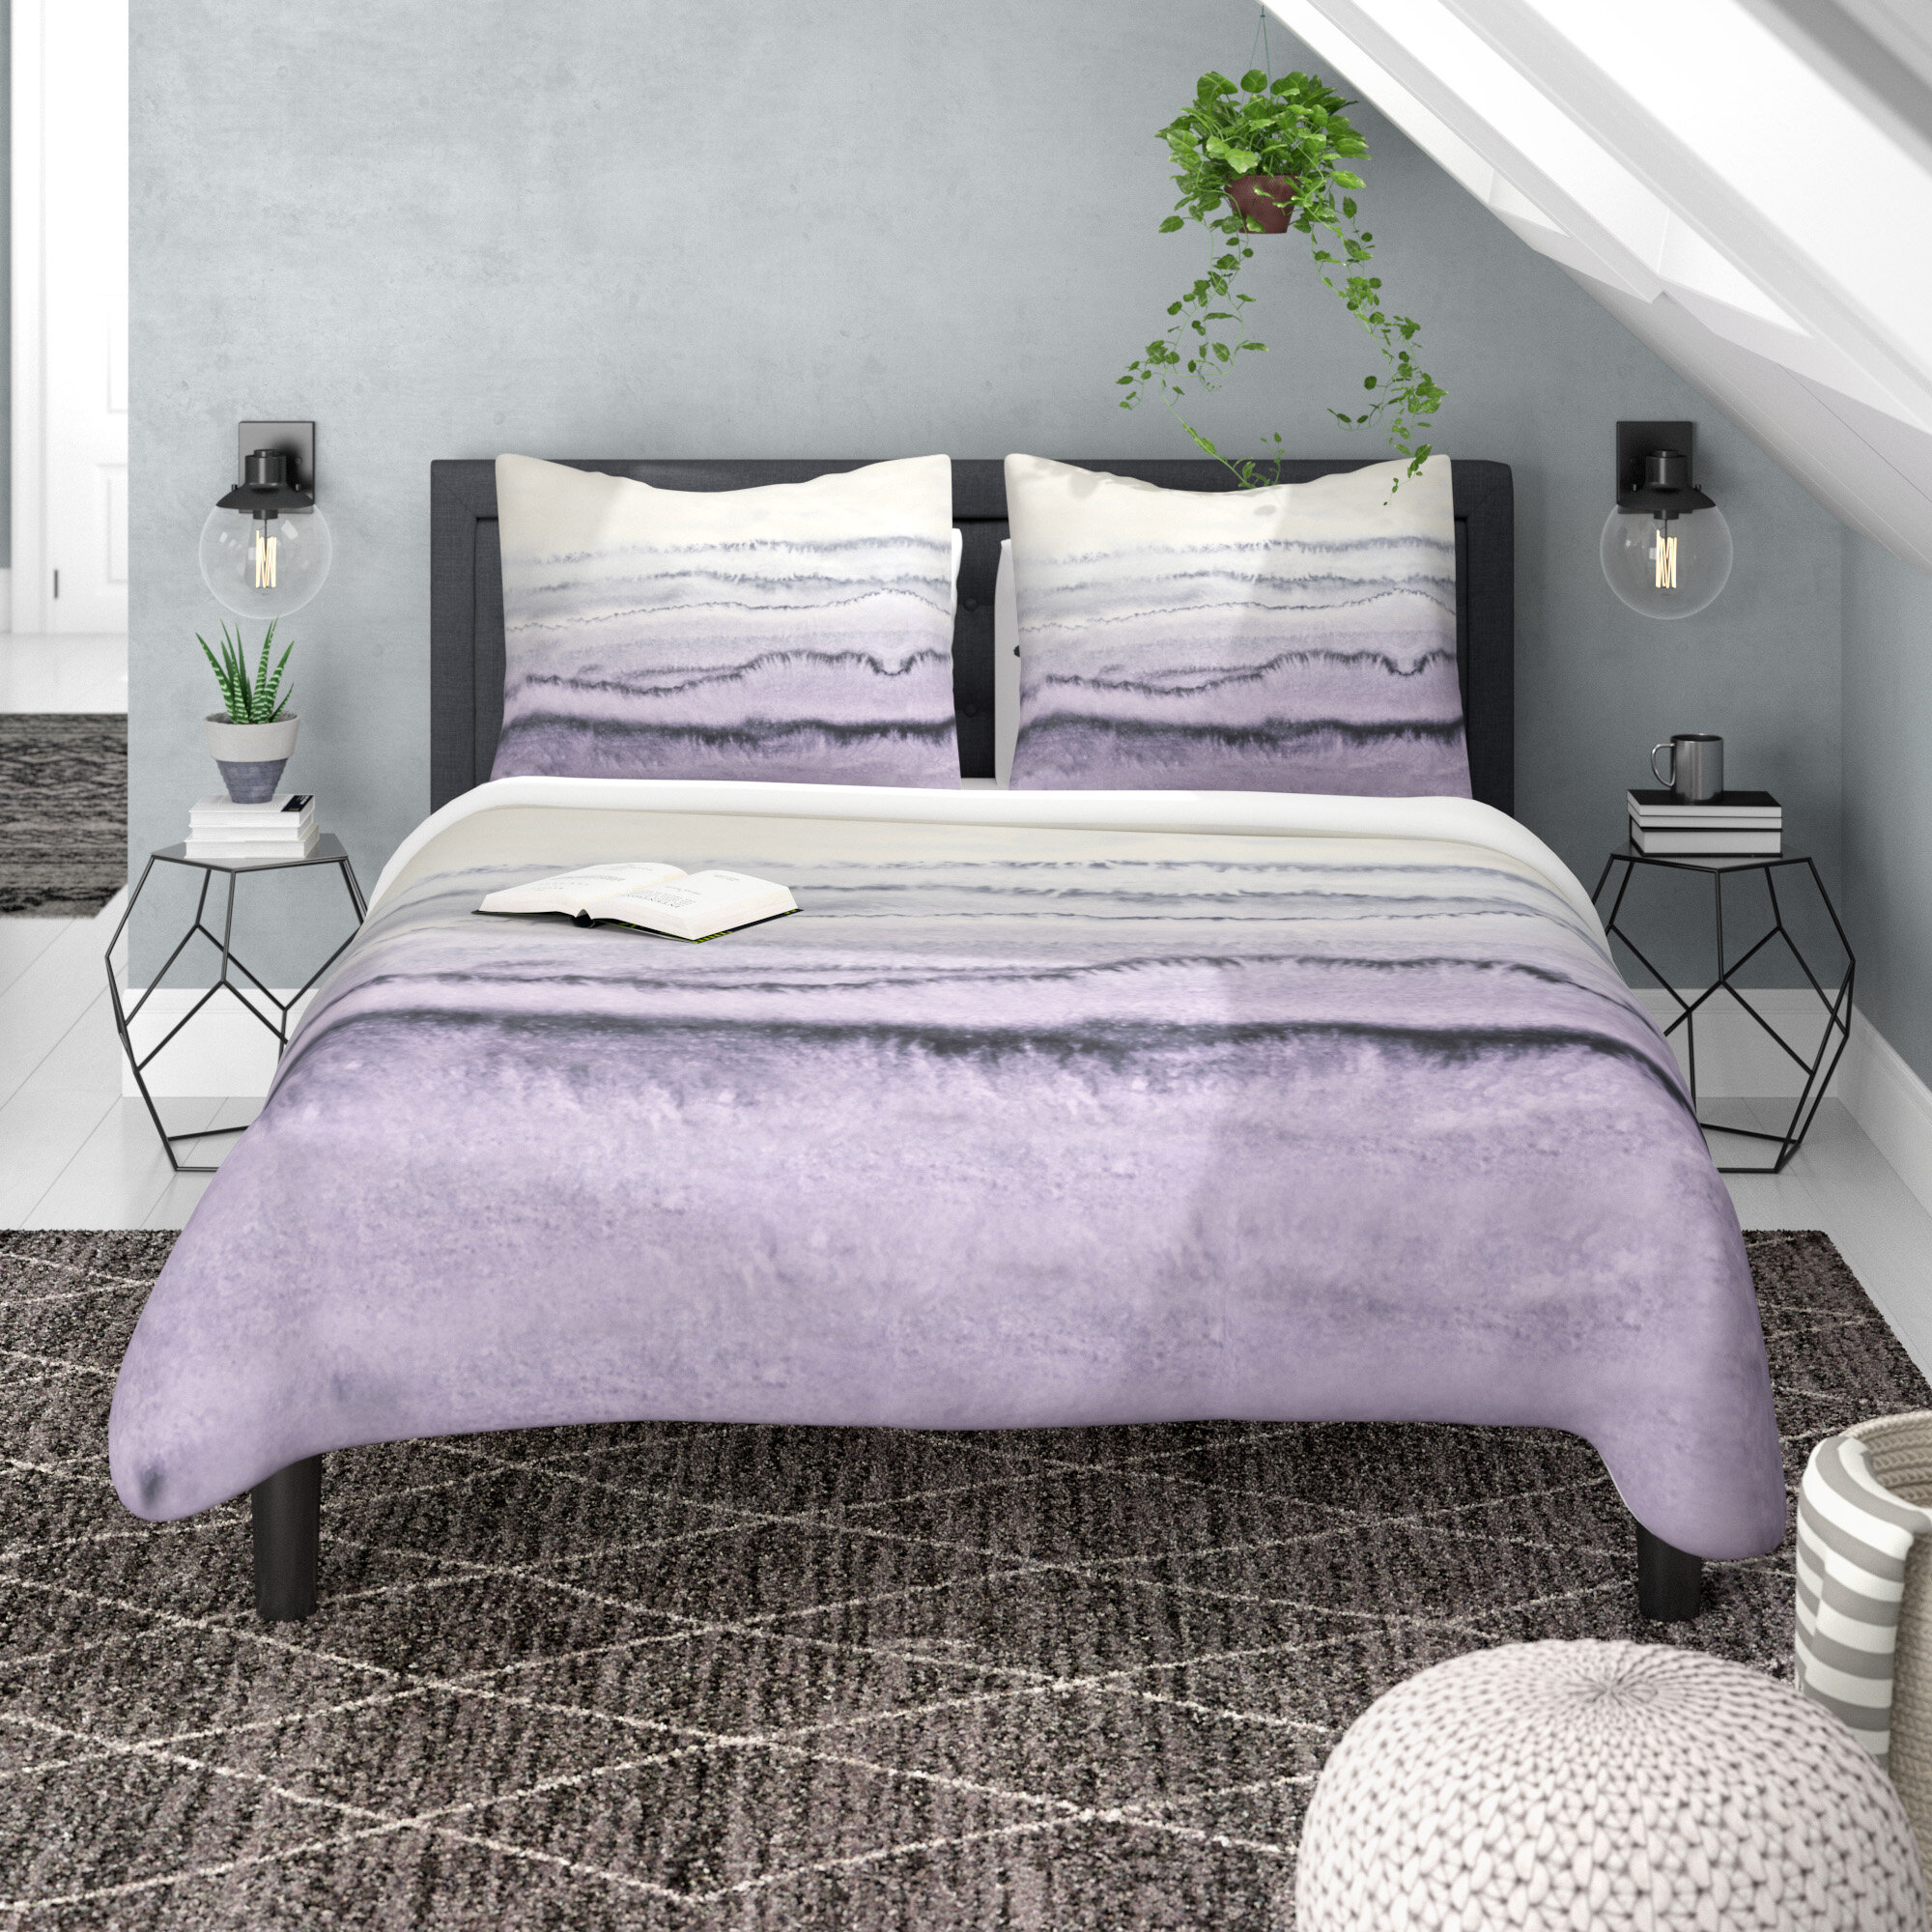 East Urban Home Within The Tides Lilac Gray Duvet Cover Set Reviews Wayfair